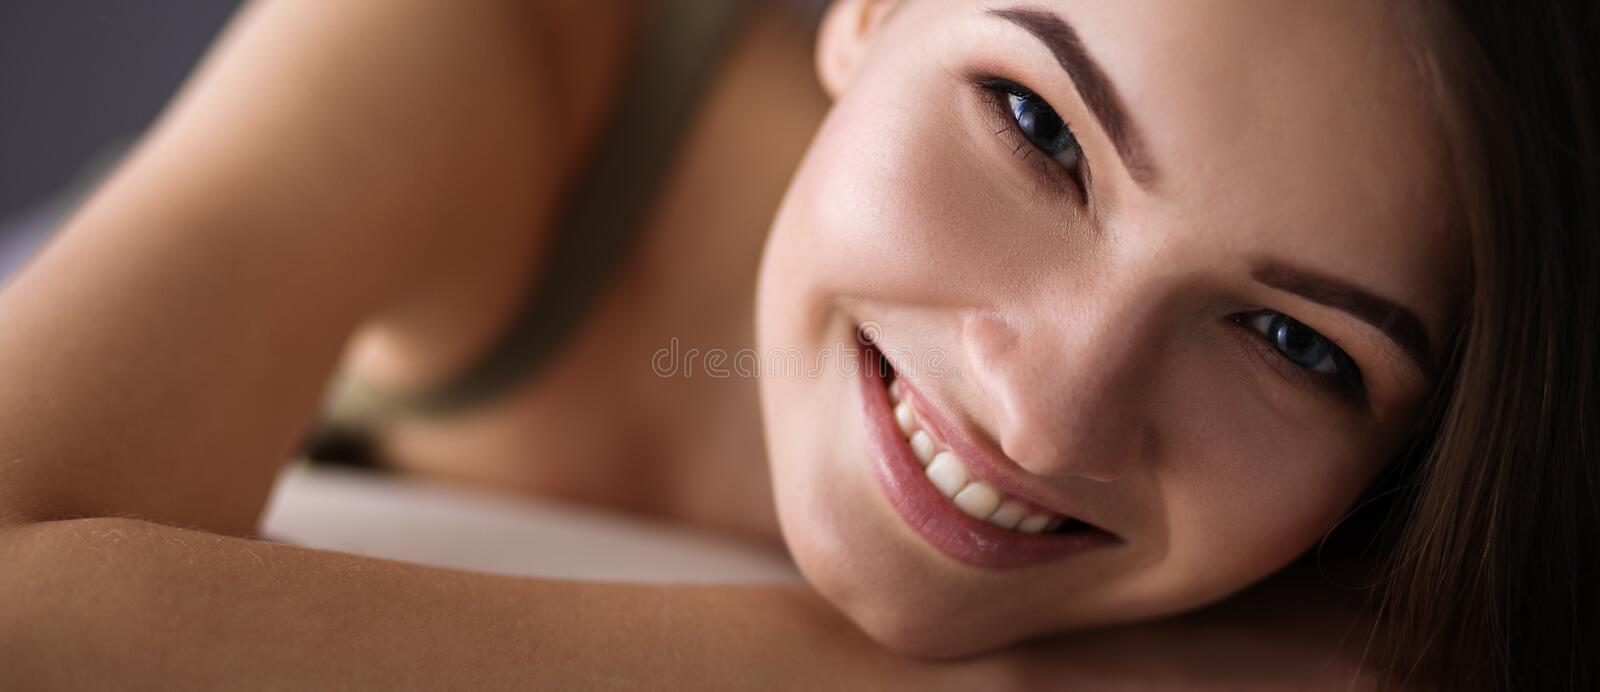 Closeup of a smiling young woman lying on couch stock images